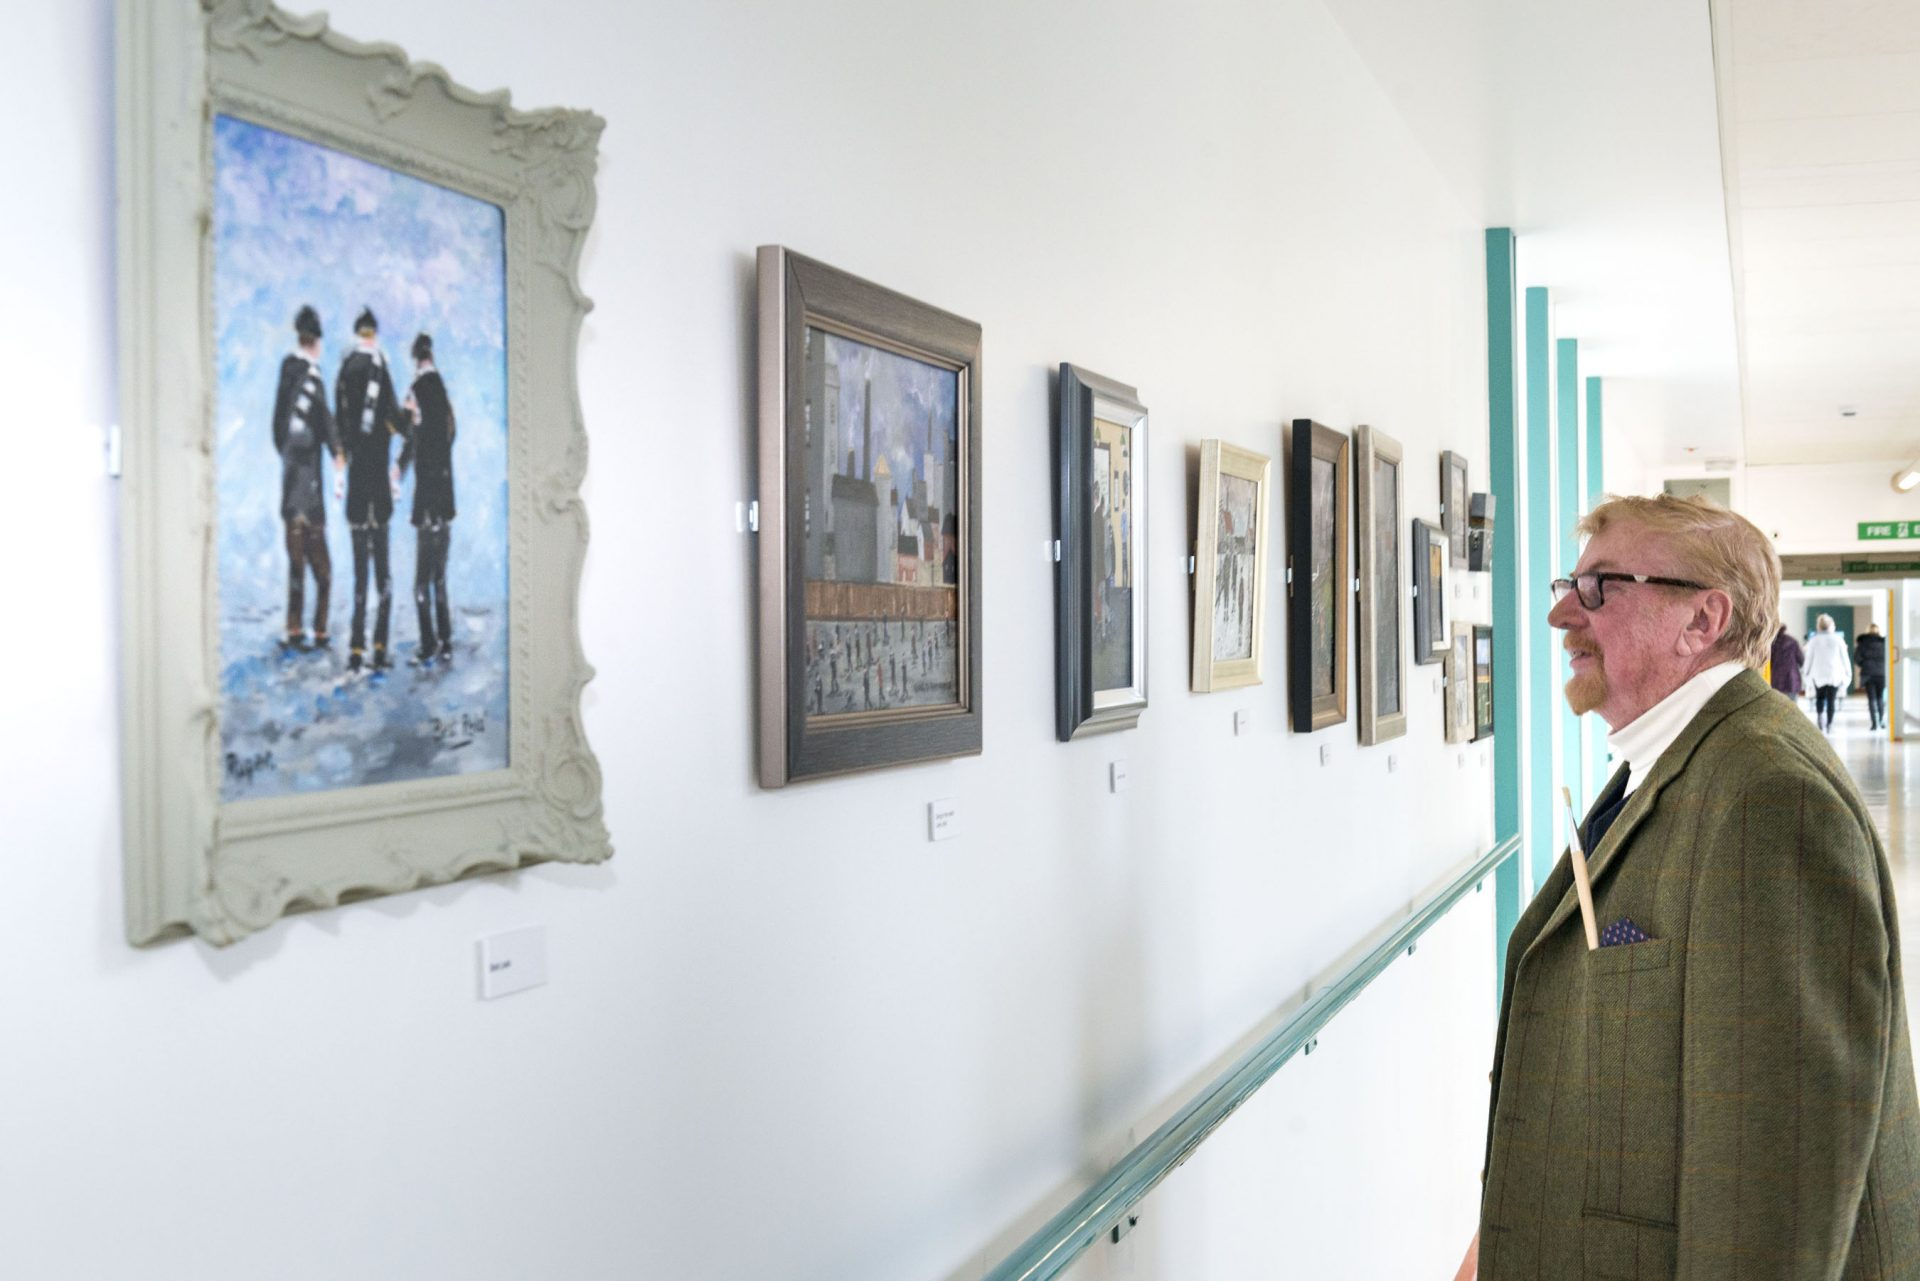 Artist Stanley Thompson showing Ashington's mining heritage on display at Wansbeck hospital